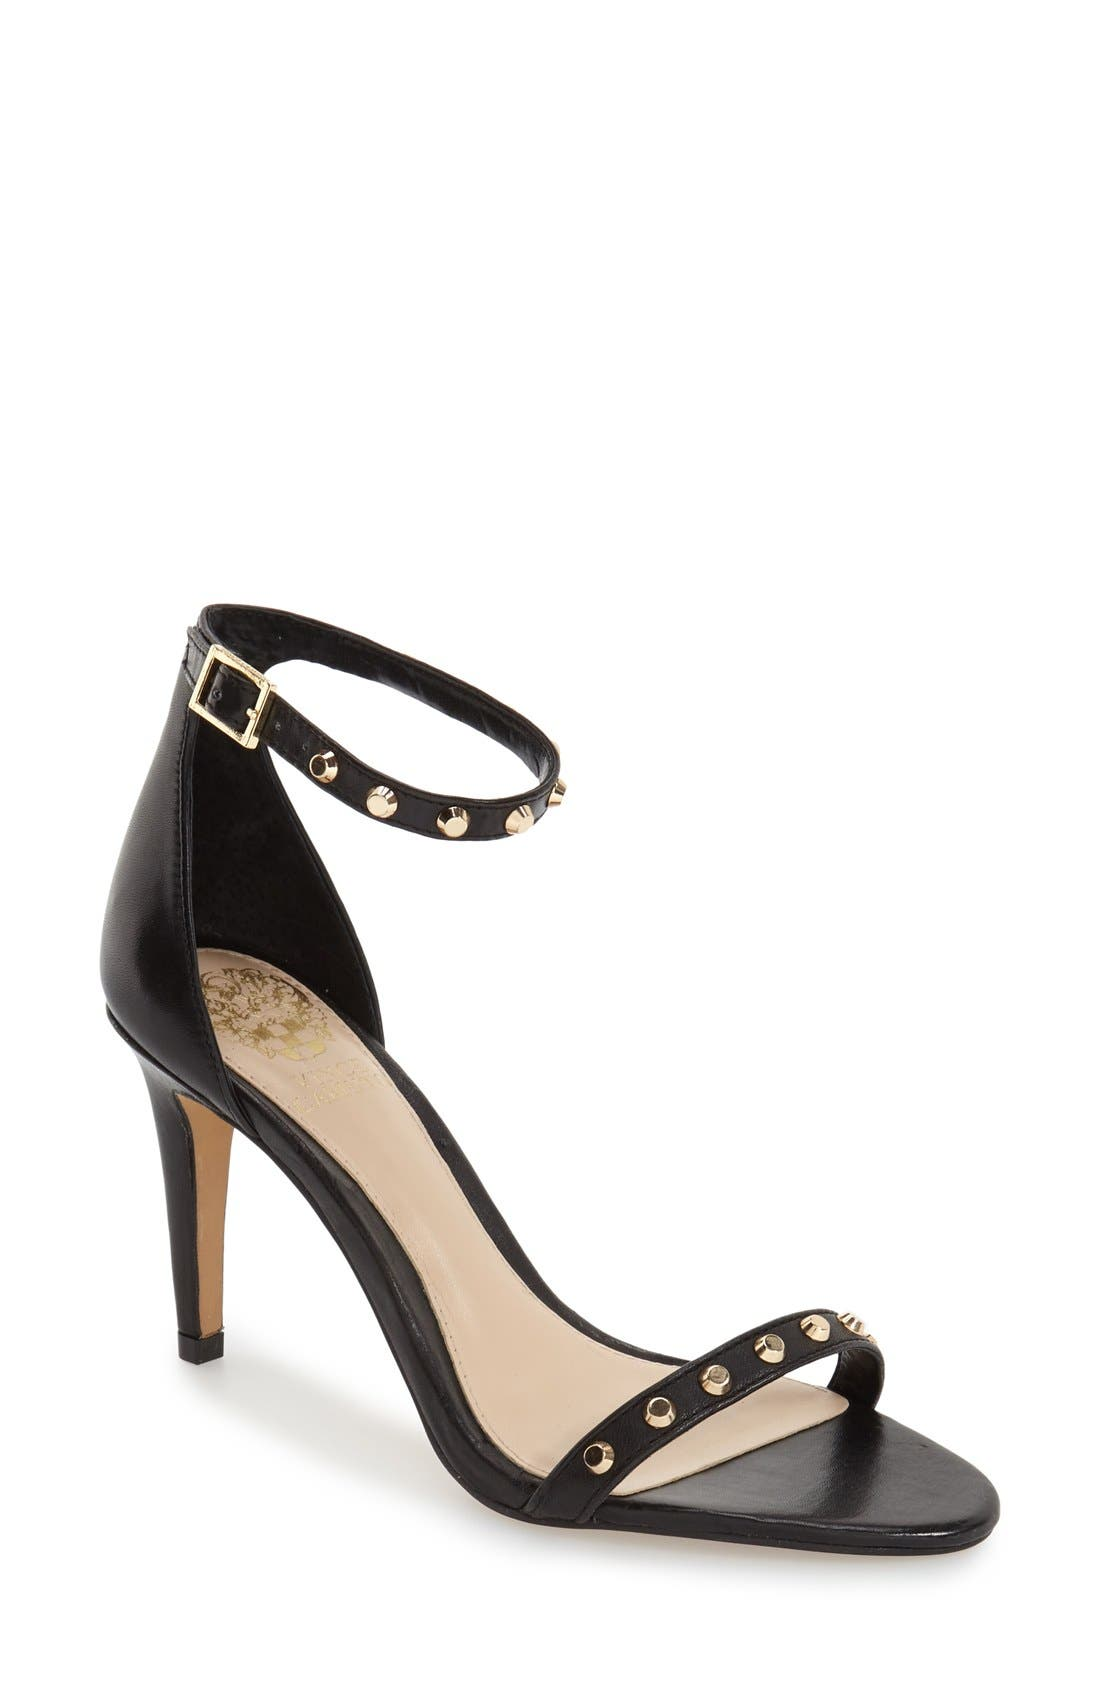 'Cassandy' Studded Sandal,                         Main,                         color, Black Napa Leather